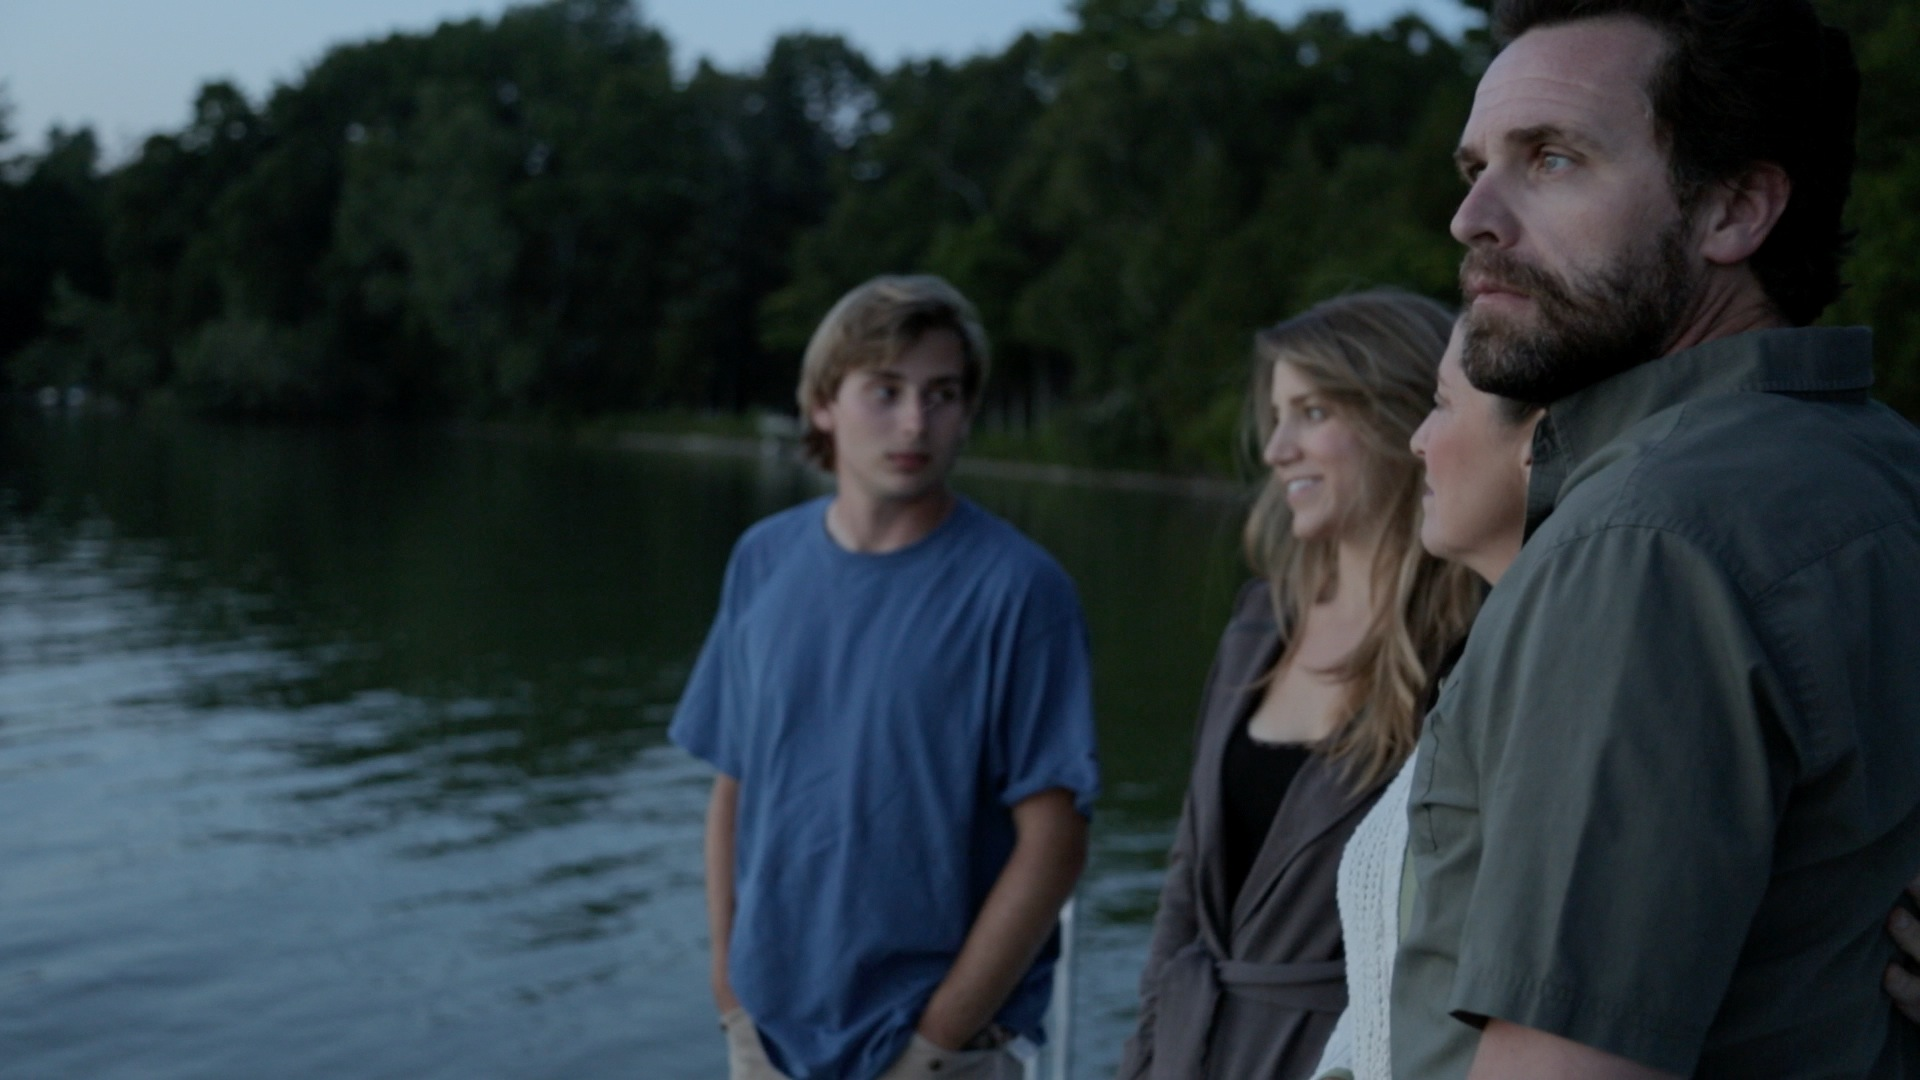 June Falling Down - Evan Board, Rebecca Weaver, Claire Morkin, and Steven Koehler